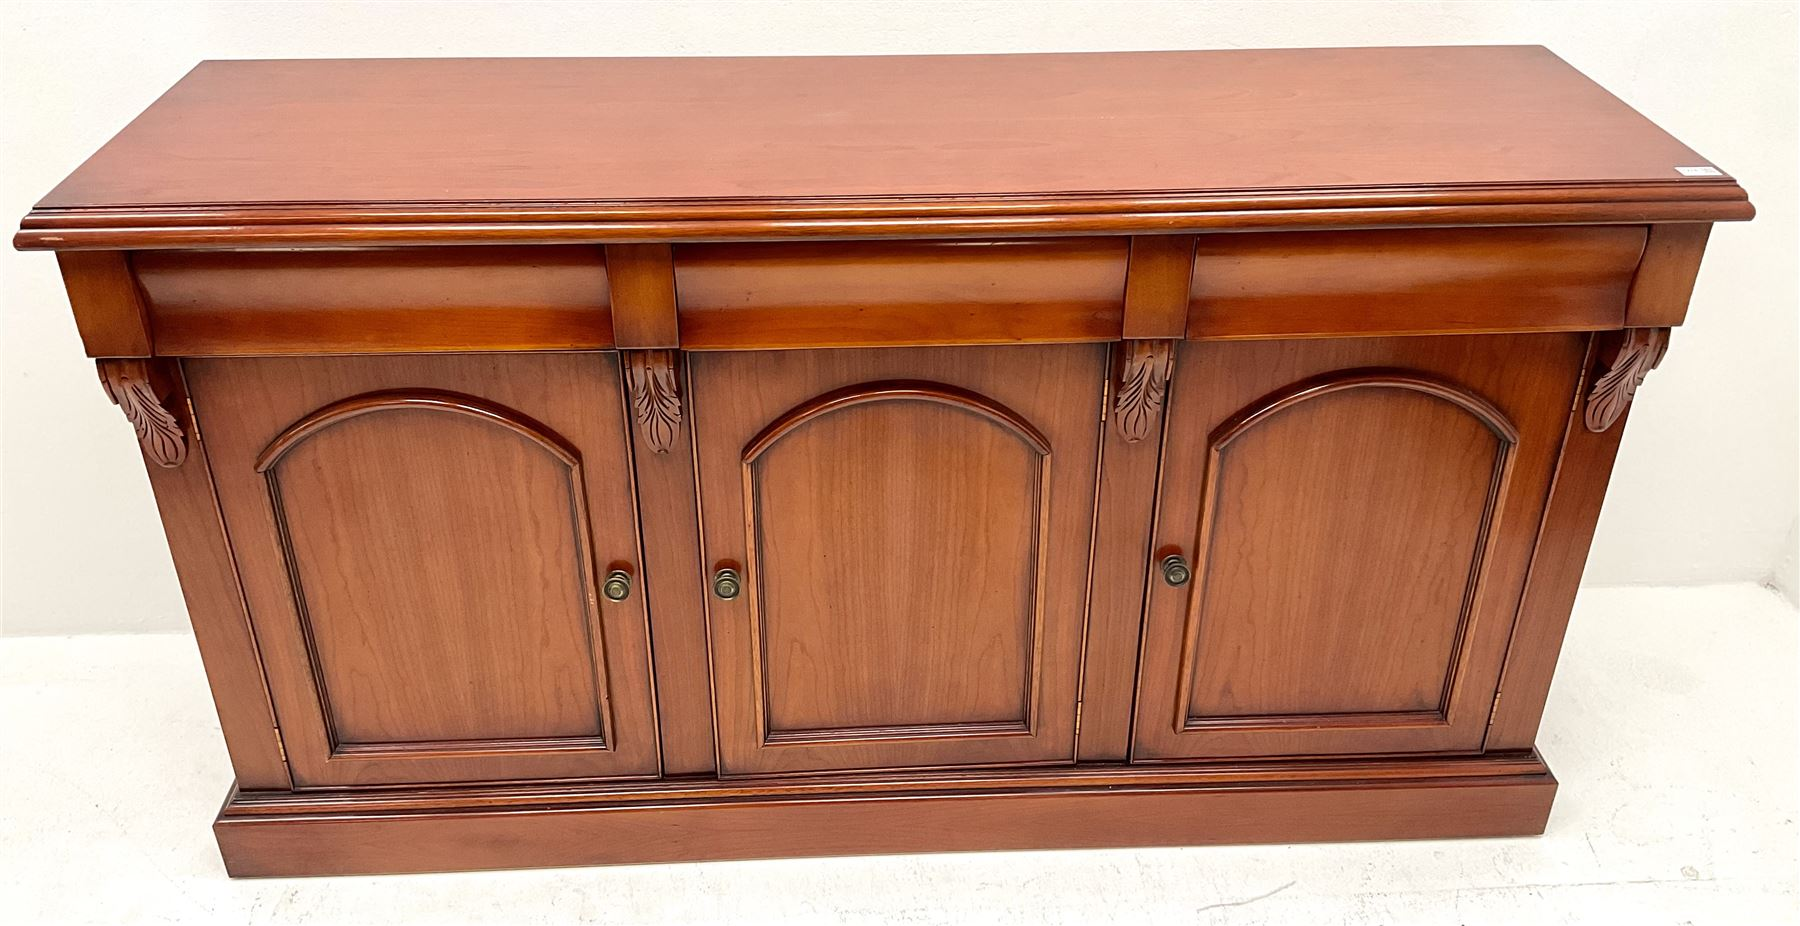 Waring & Gillow - cherry wood sideboard - Image 2 of 6